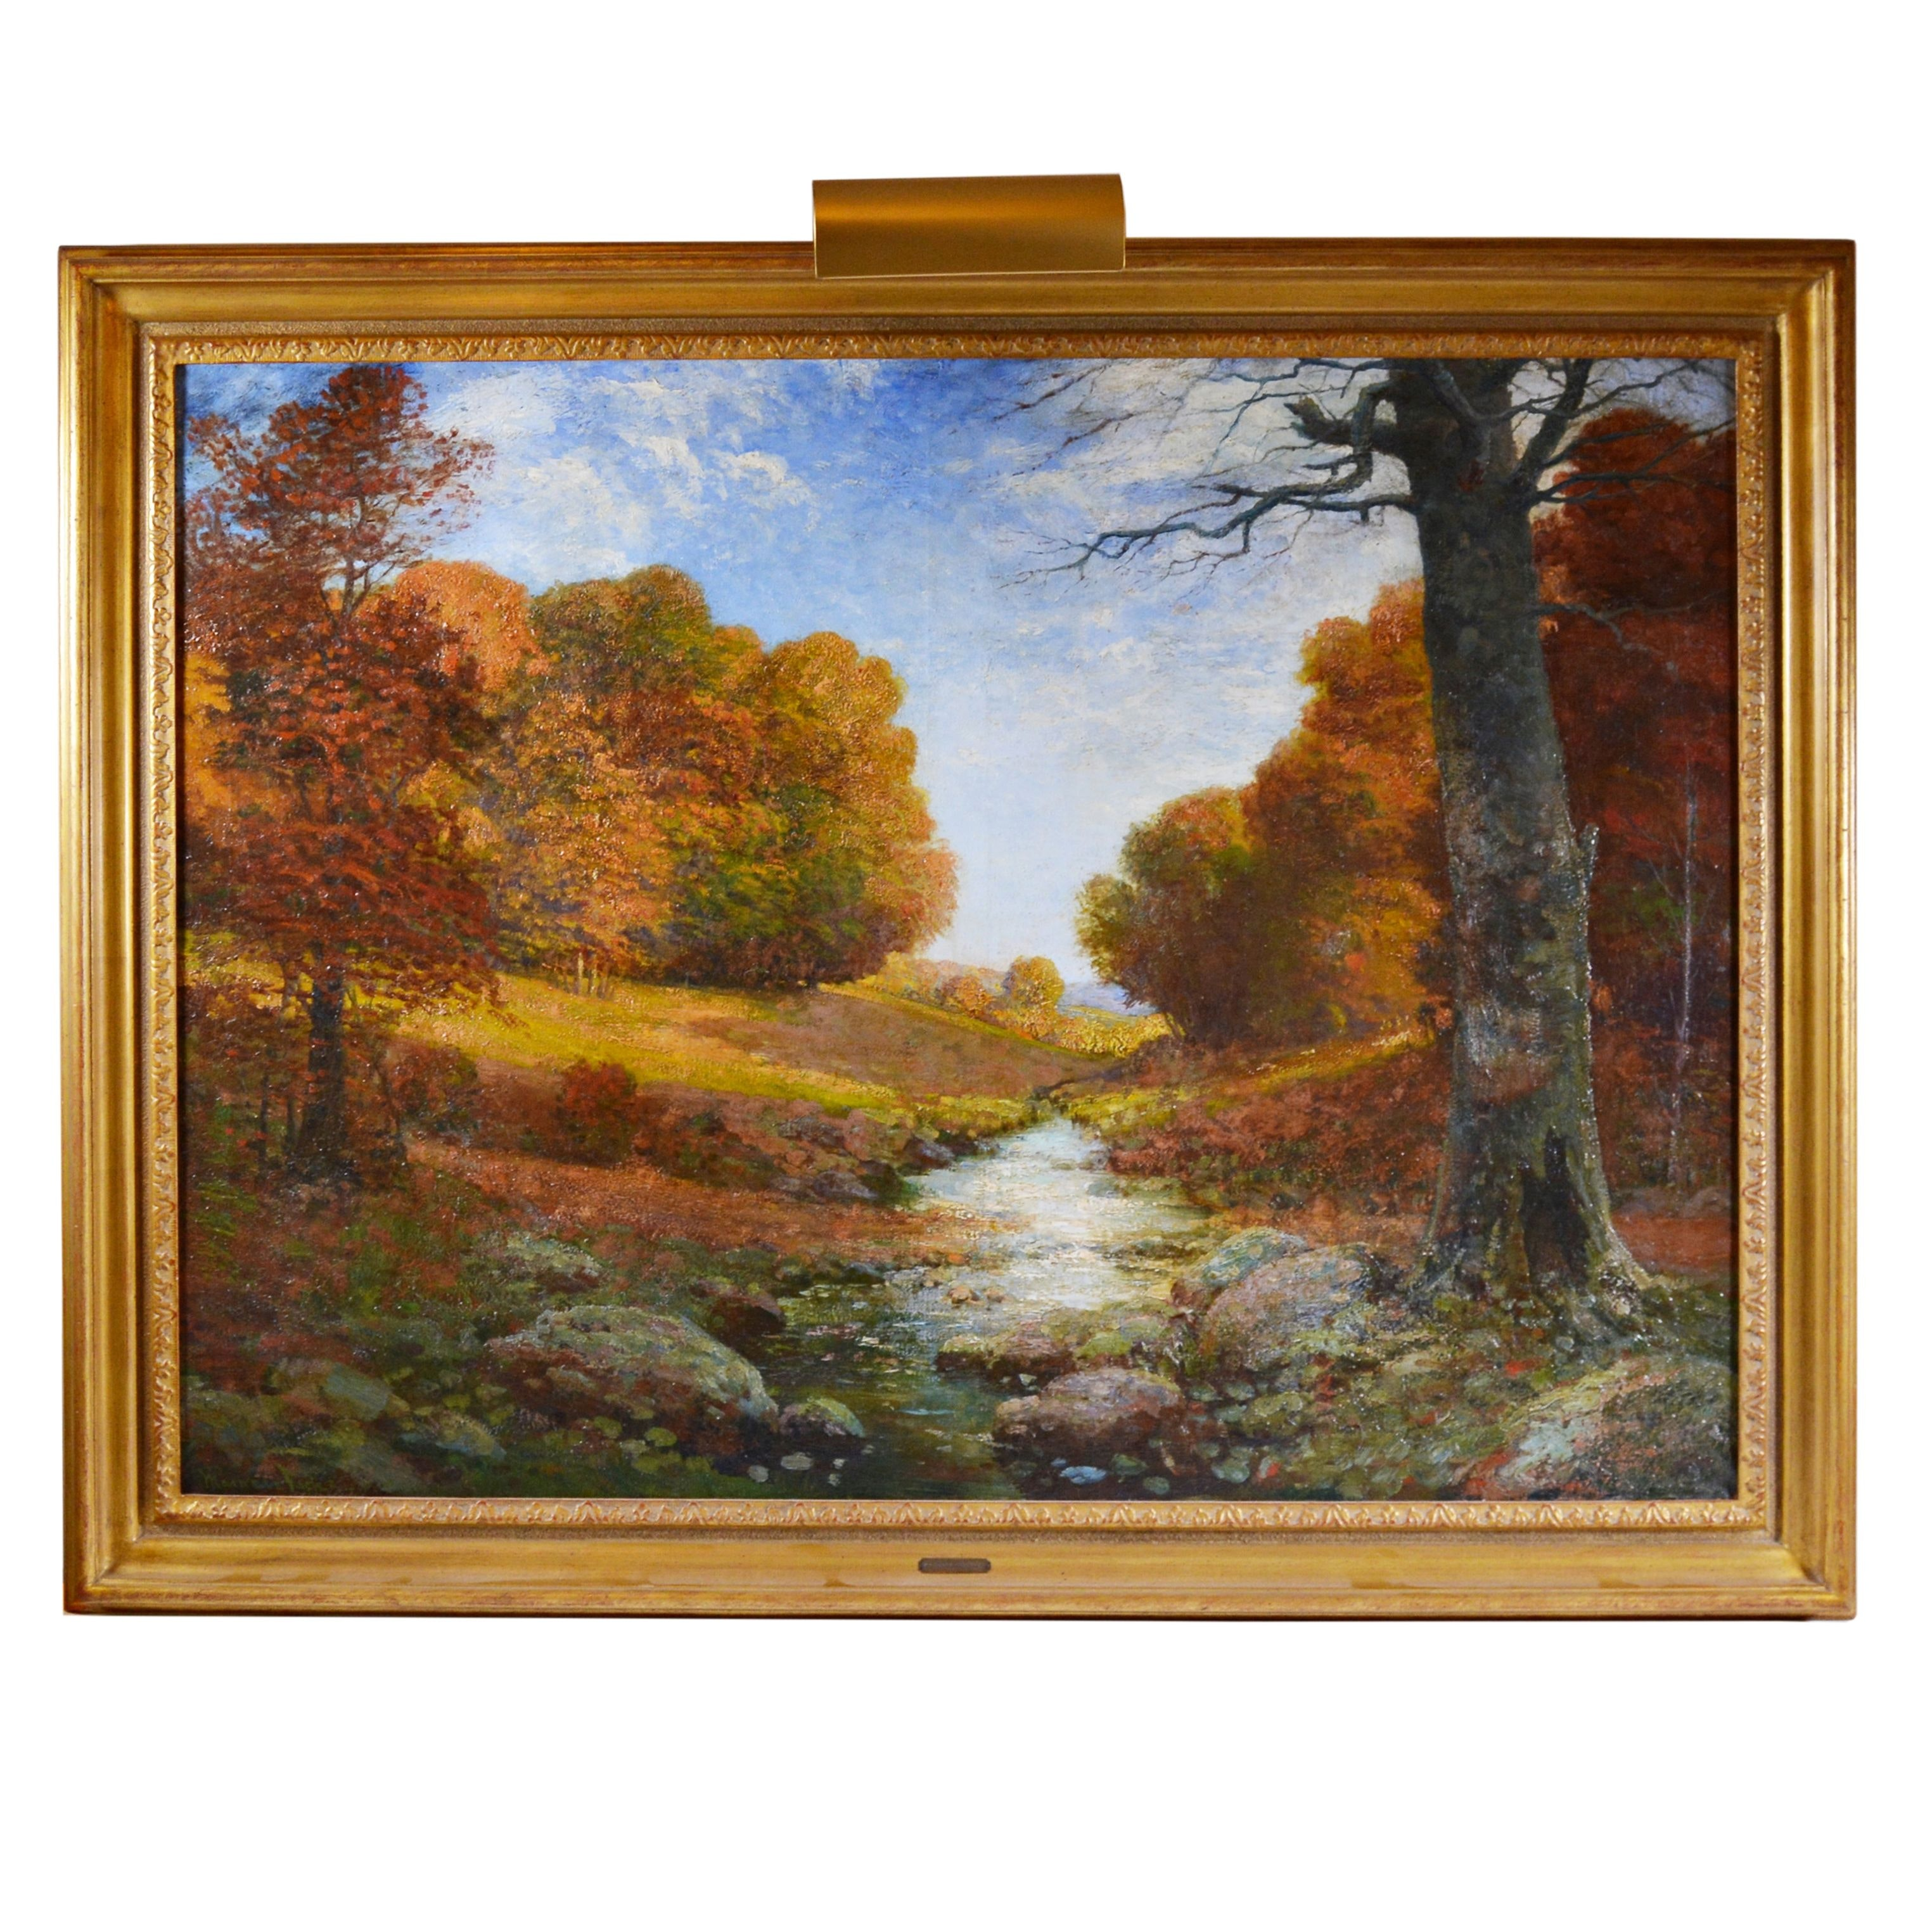 Maxwell Foster Oil Painting of Landscape, Early 20th Century